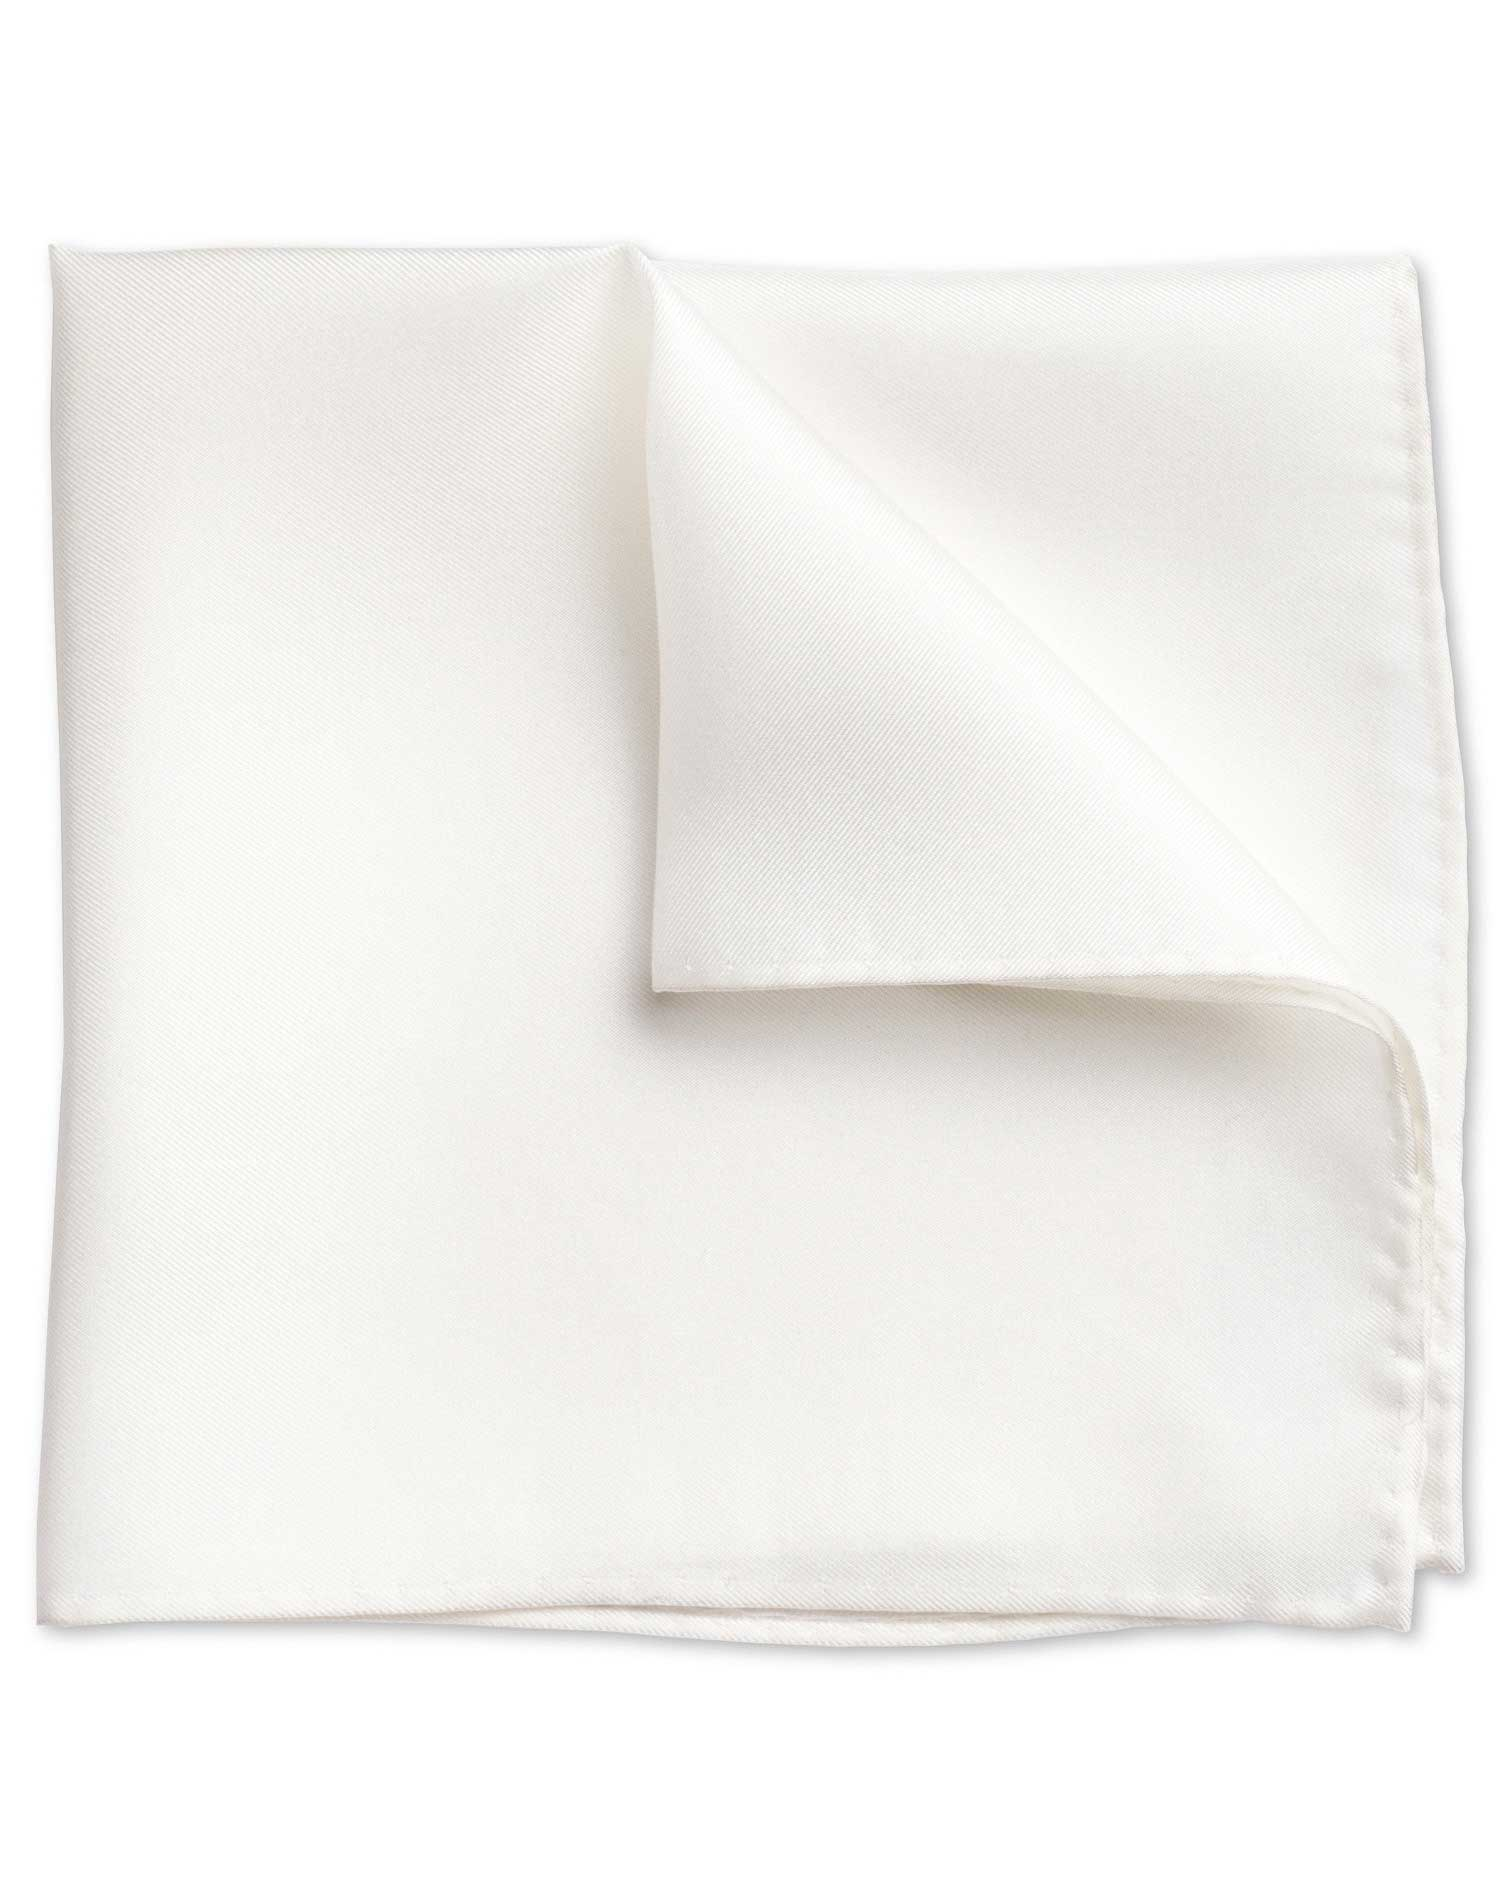 Edwardian Men's Formal Wear Charles Tyrwhitt White silk evening pocket square £14.95 AT vintagedancer.com